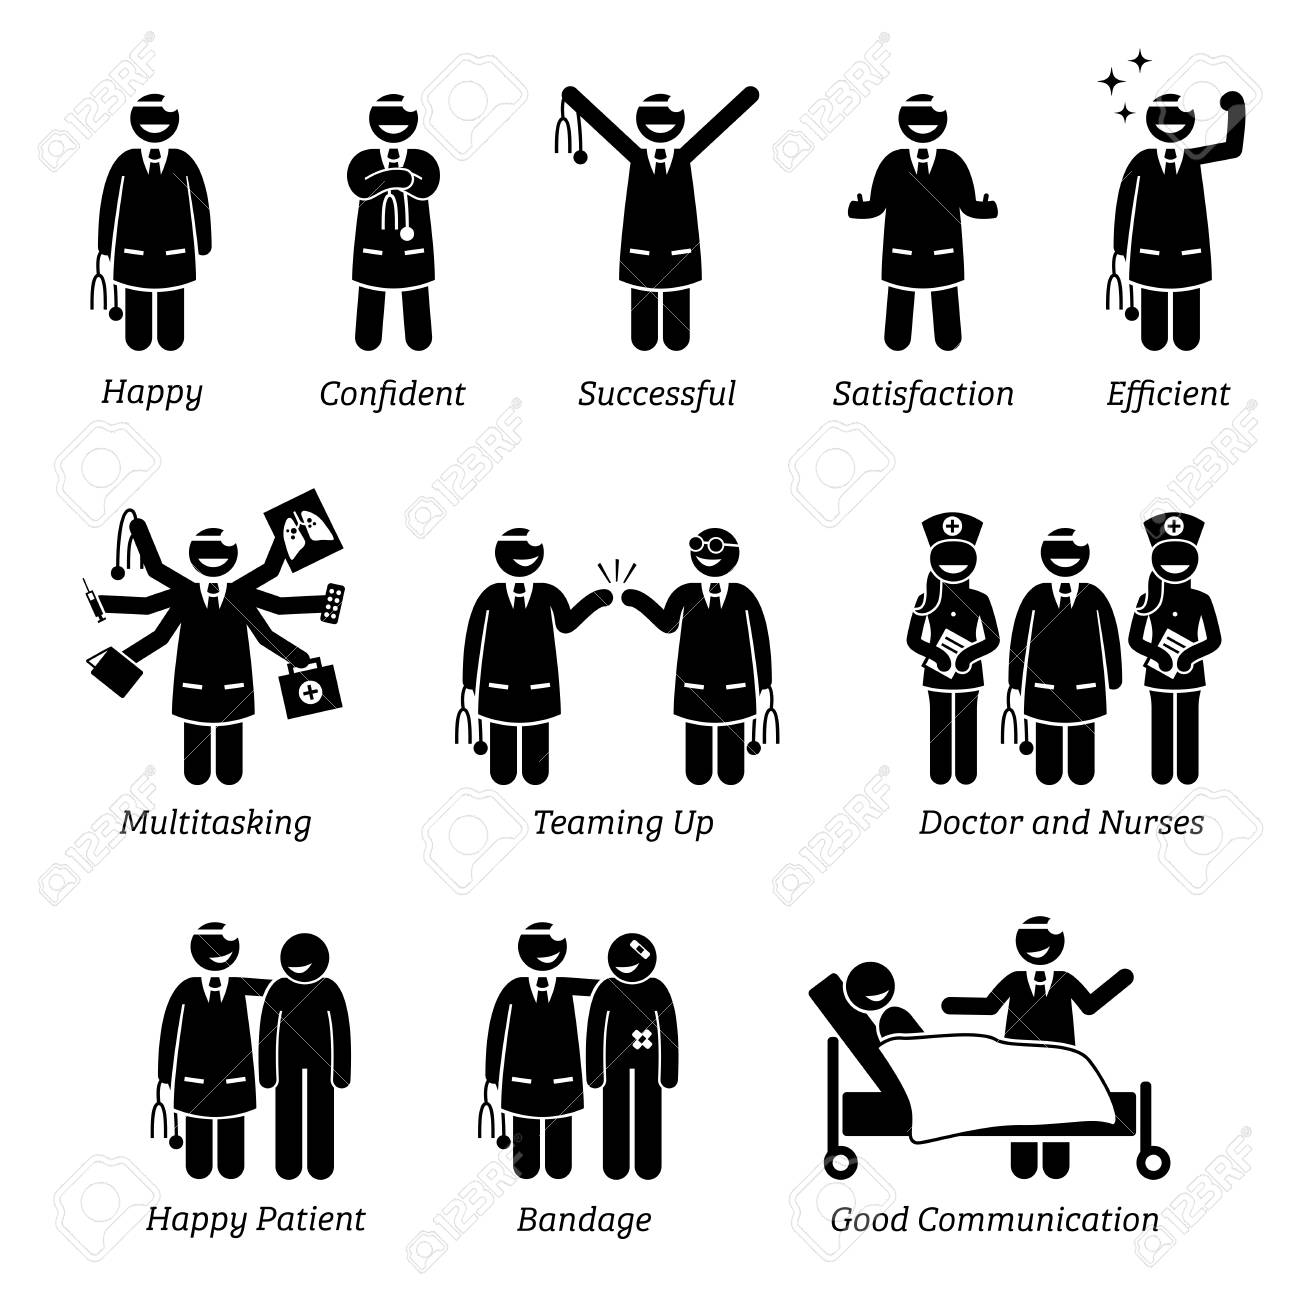 Happy and Cheerful Doctor. Stick figure pictogram depicts a doctor that is feeling confident, successful, and satisfied. The doctor can do multitasking and love his work job at the clinic and hospital - 92871789